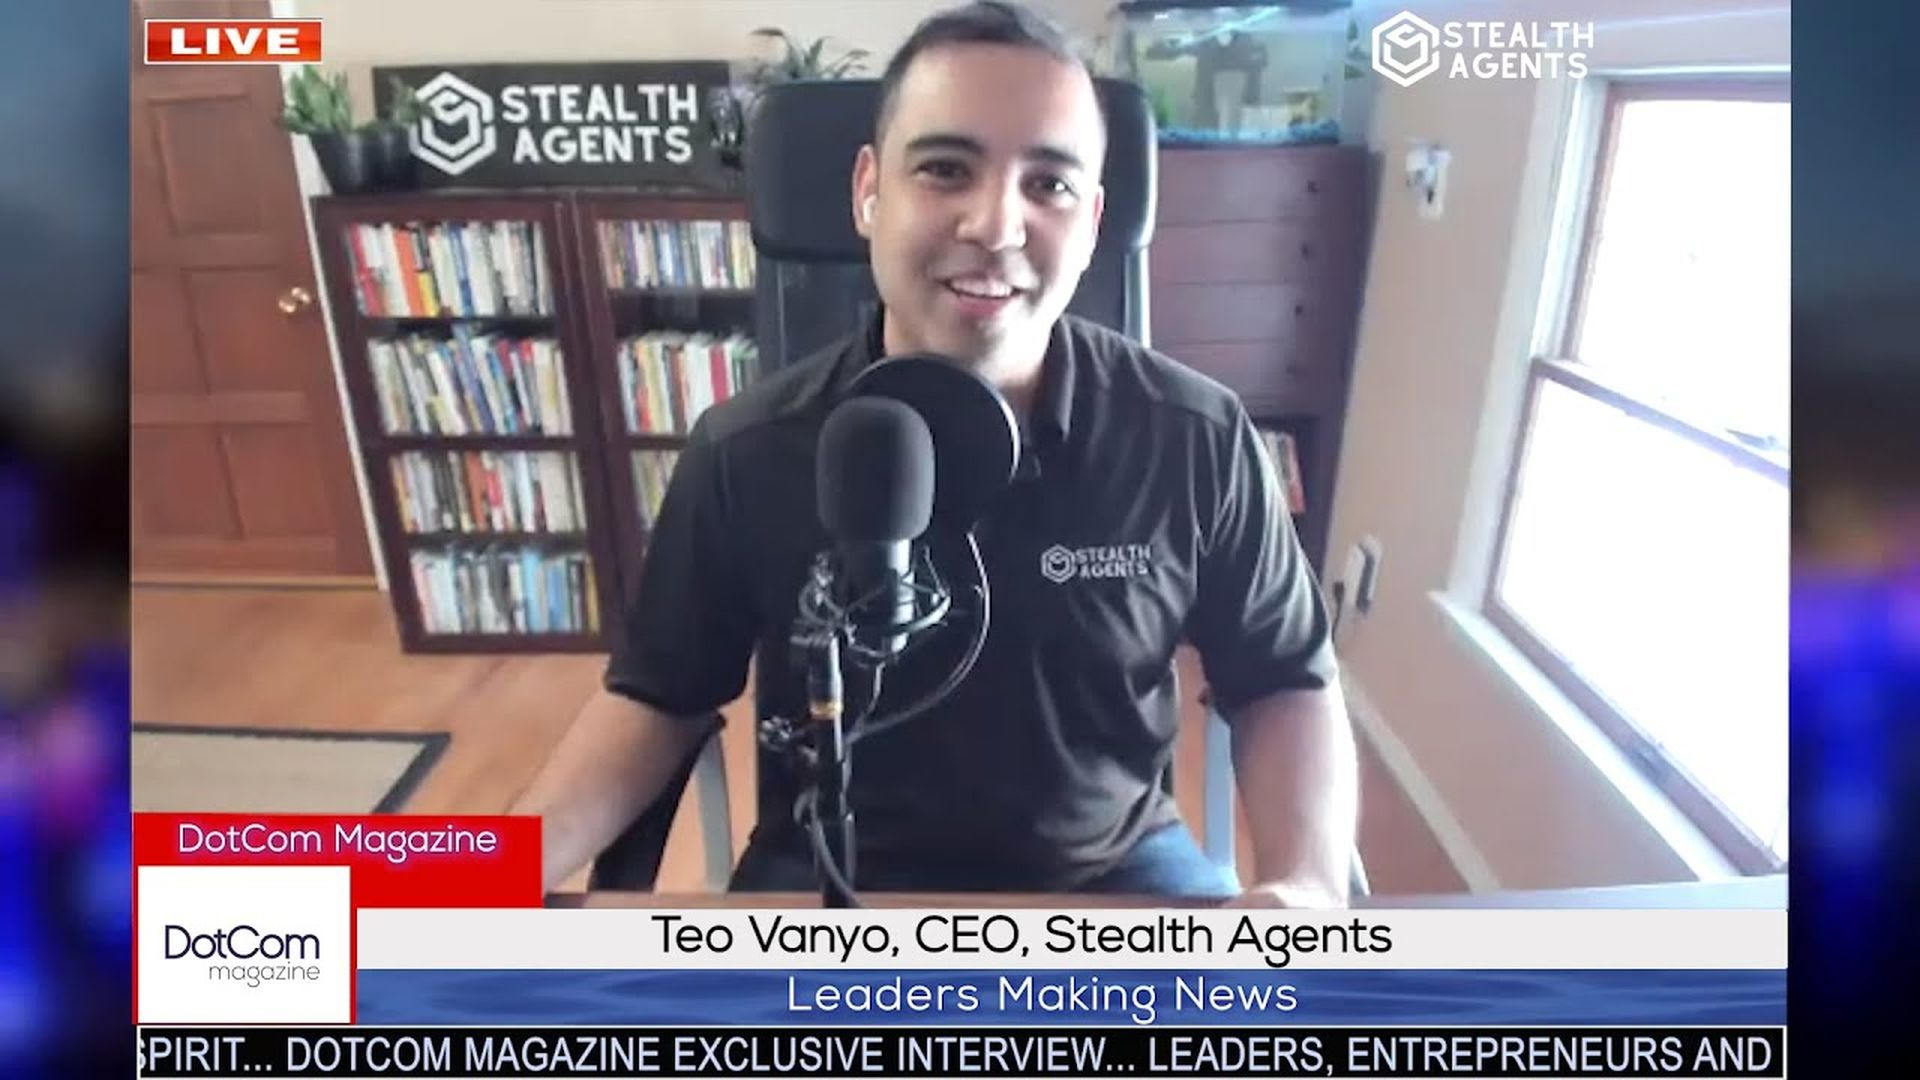 Teo Vanyo, CEO, Stealth Agents, A DotCom Magazine Exclusive Interview